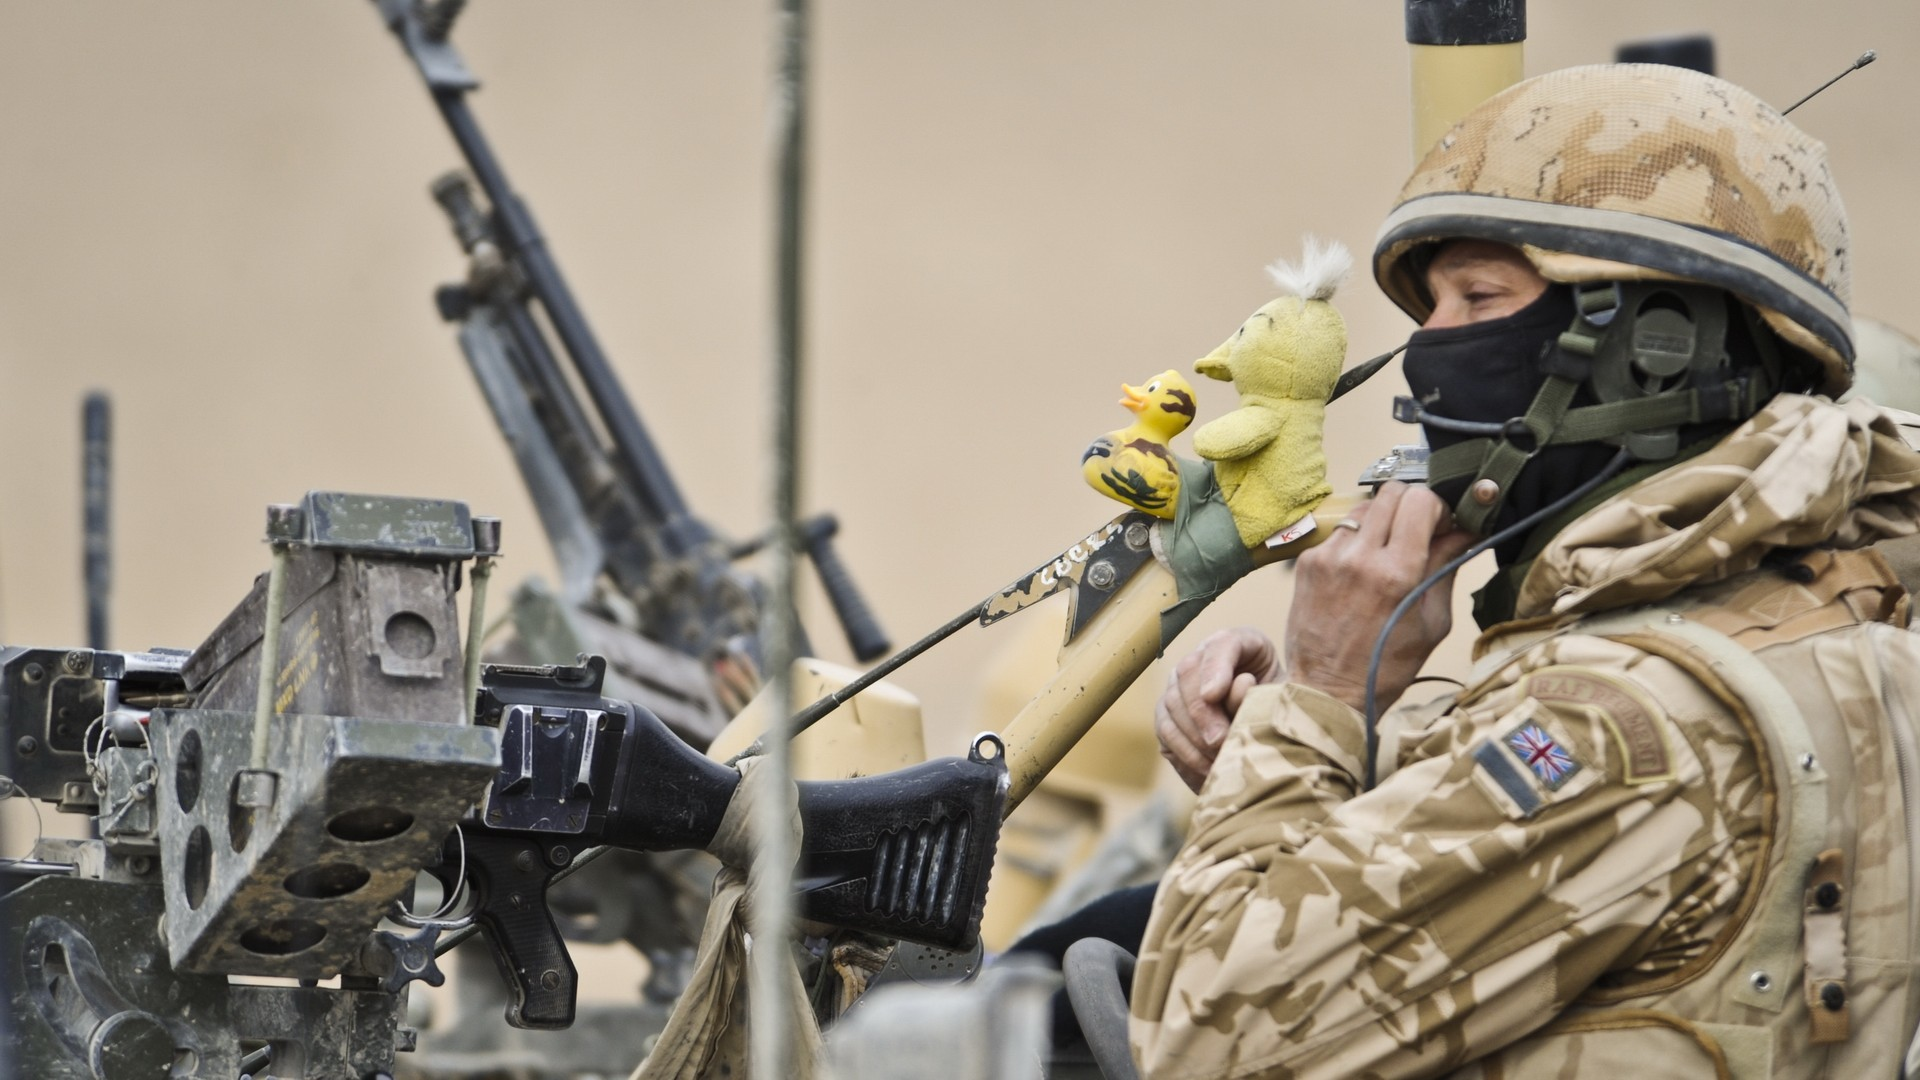 British Special Forces Army Soldier Wallpaper 4585